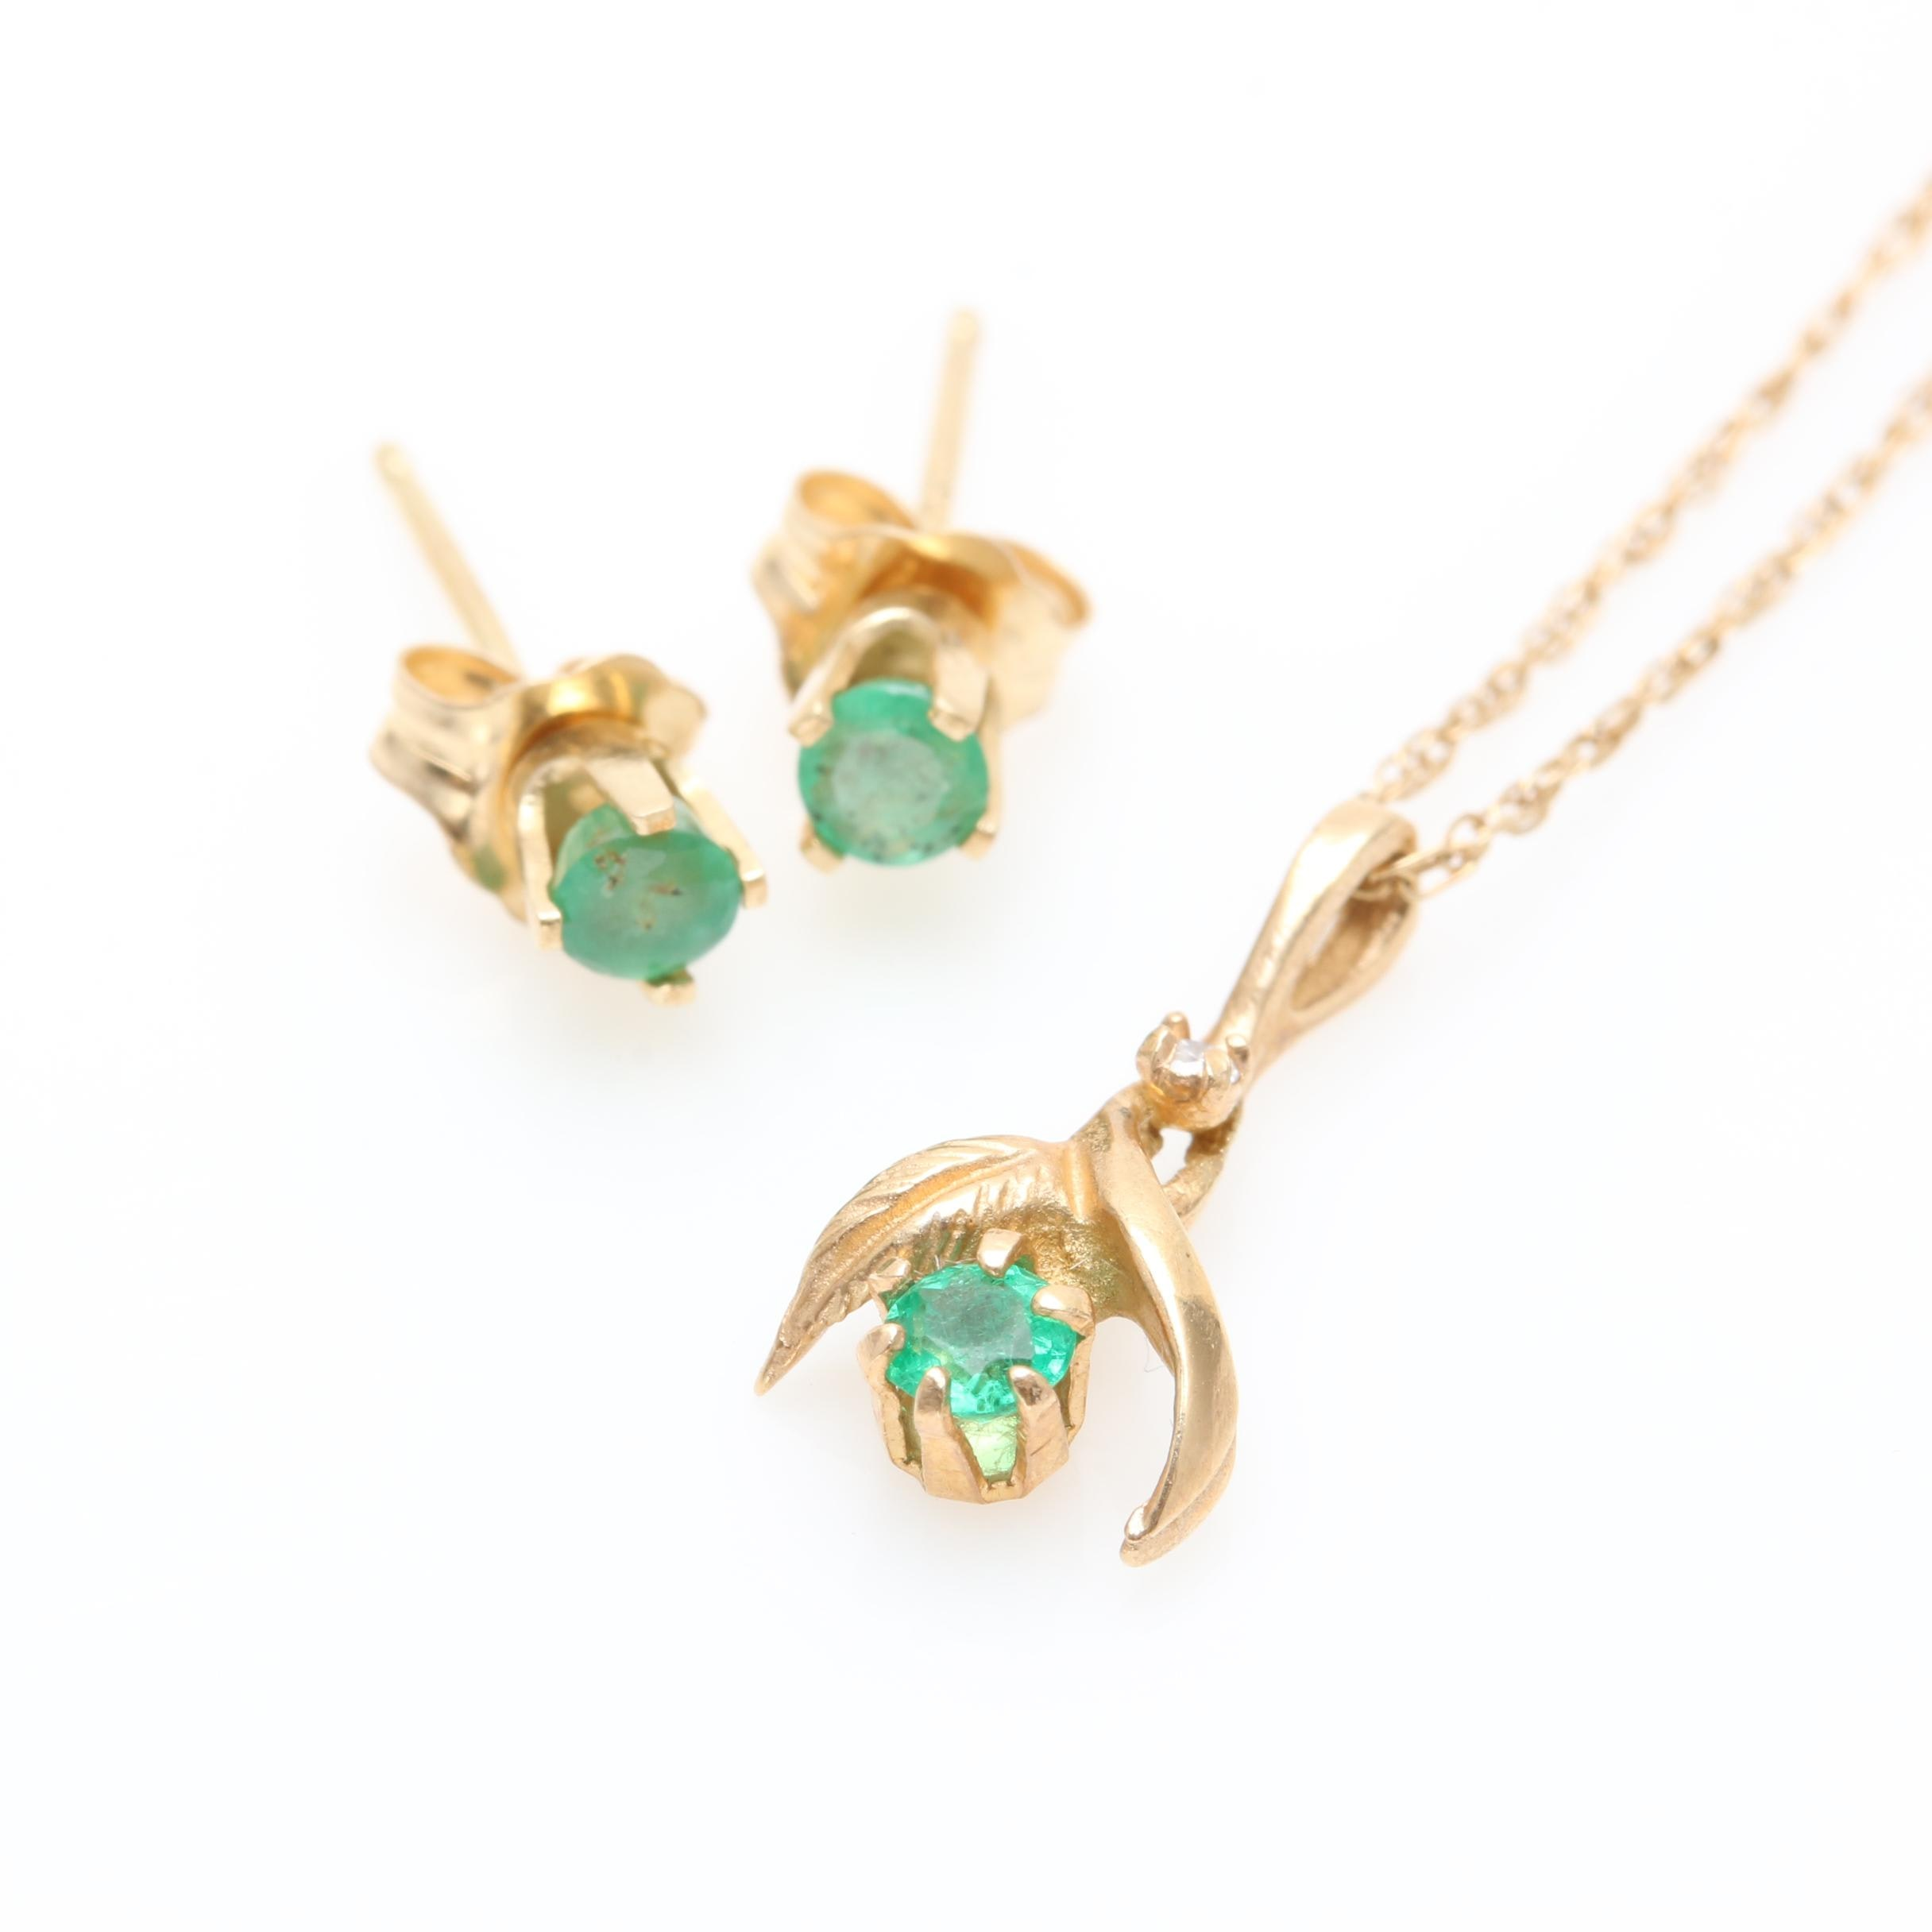 14K Yellow Gold Emerald and Diamond Necklace and Earrings